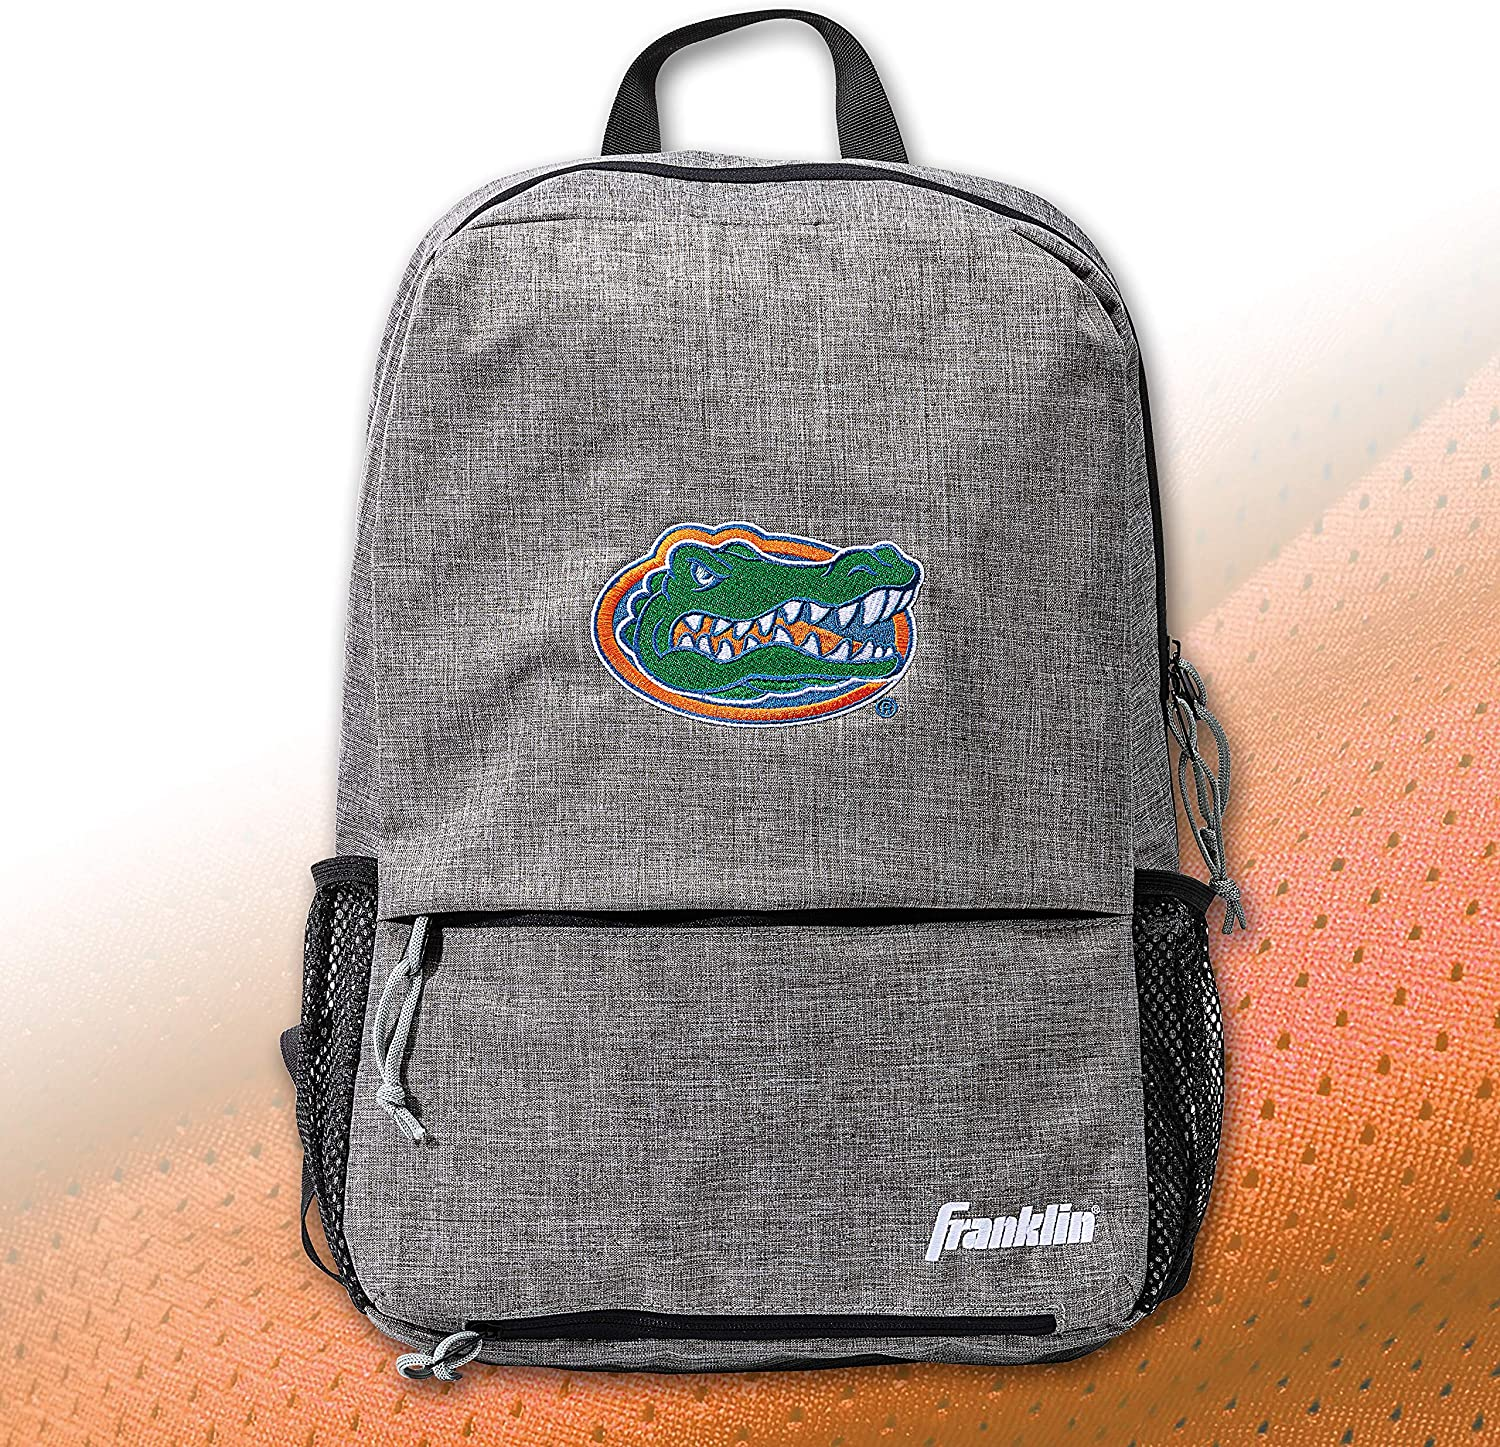 Heather Gray NCAA College Football Bags 18 x 12 x 4 Official Logos and Colors Franklin Sports NCAA Team Licensed Football Backpack